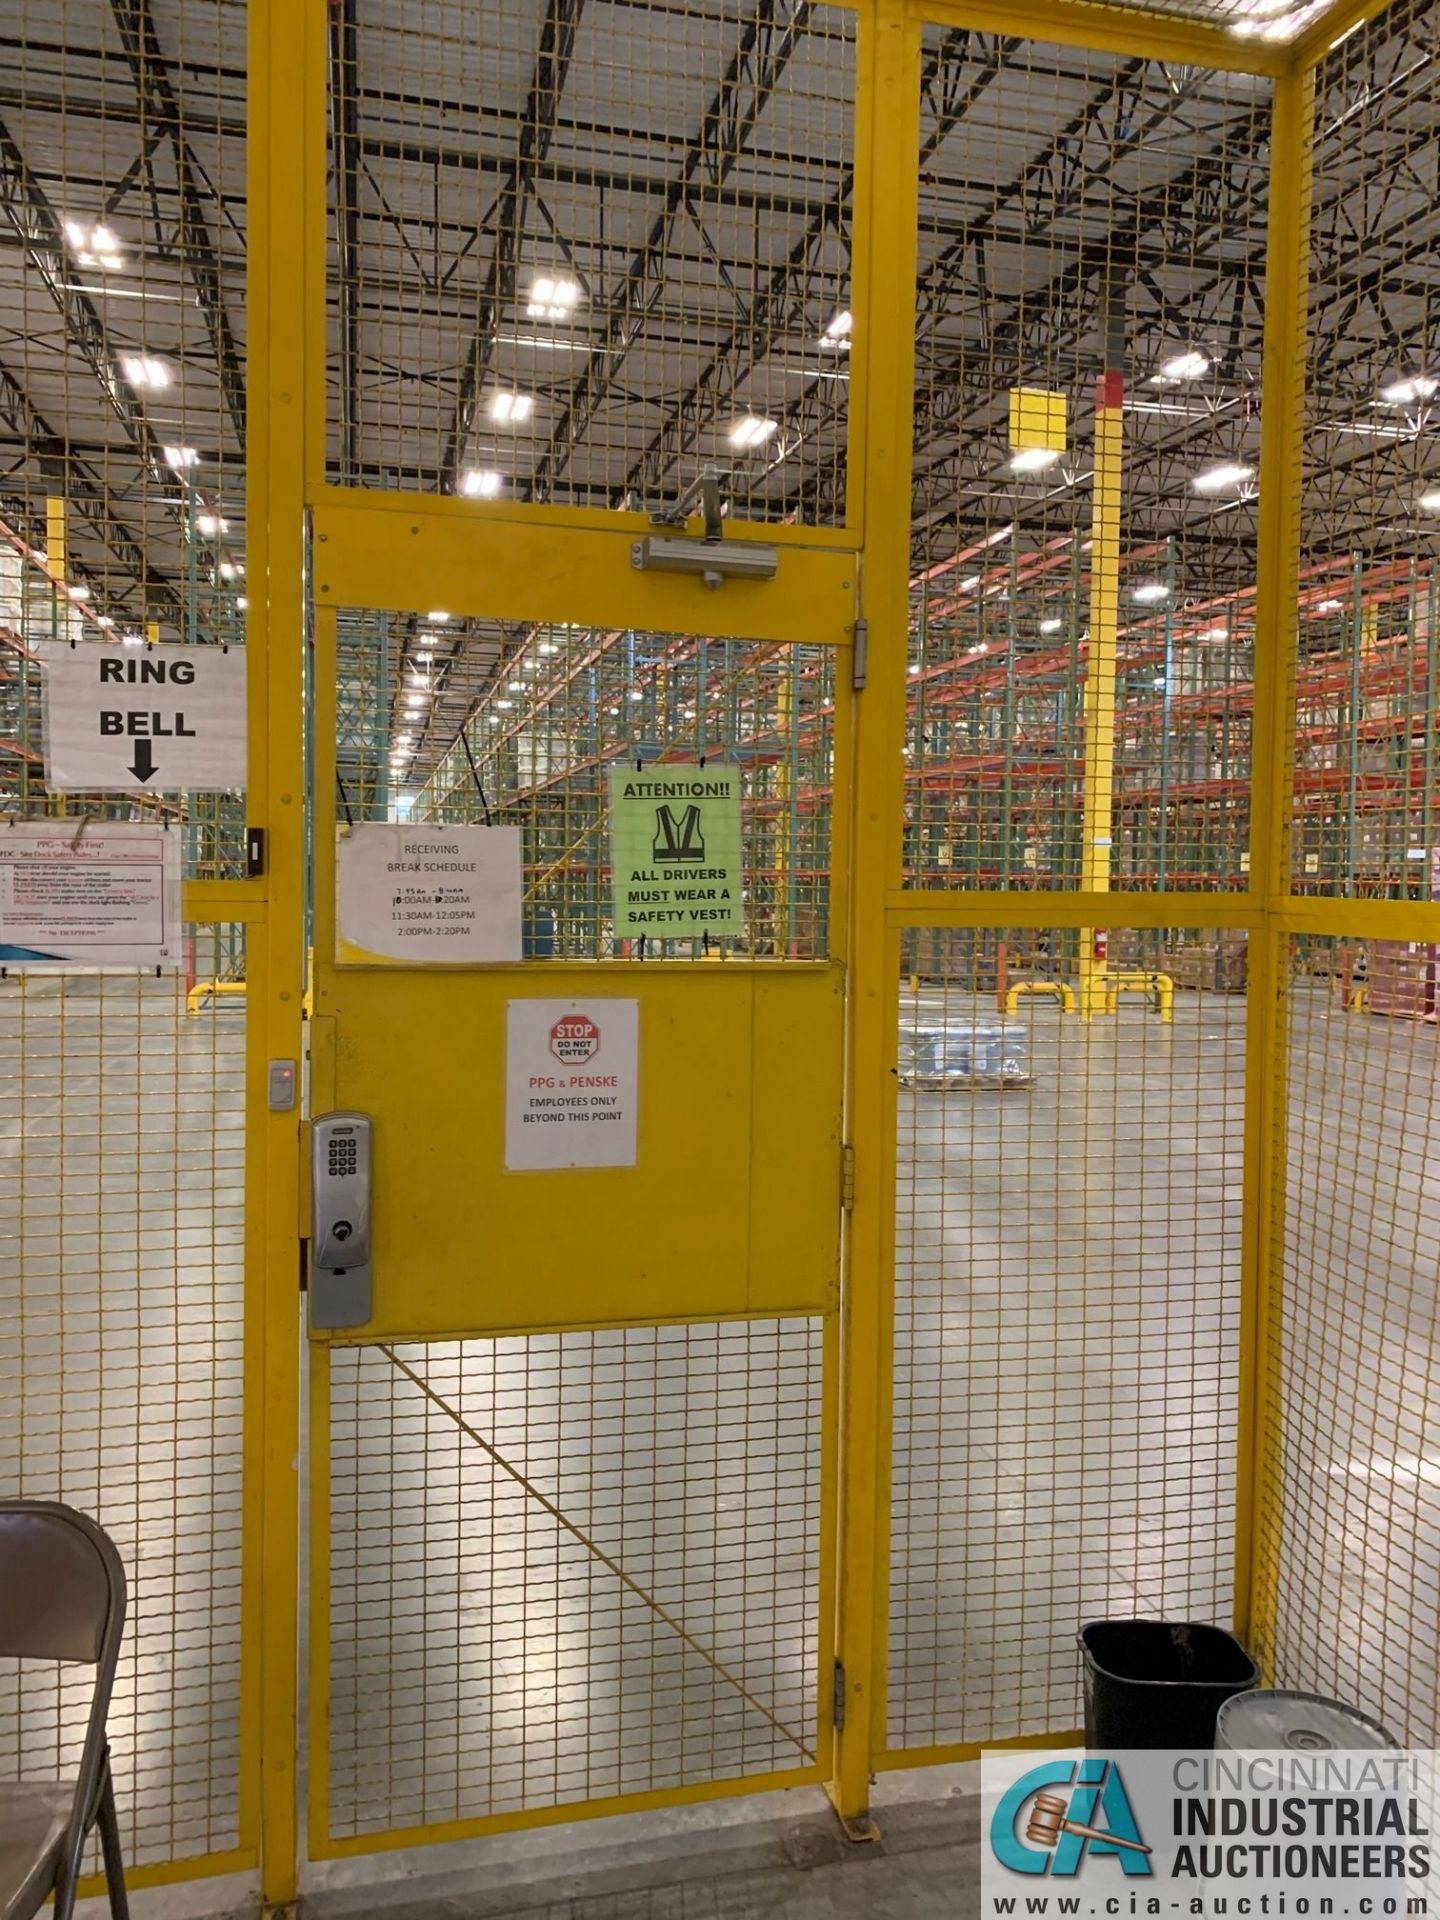 SAFETY CAGE - BACK DRIVERS (5400 OAKLEY INDUSTRIAL BLVD., FAIRBURN, GA 30213) - Image 7 of 7